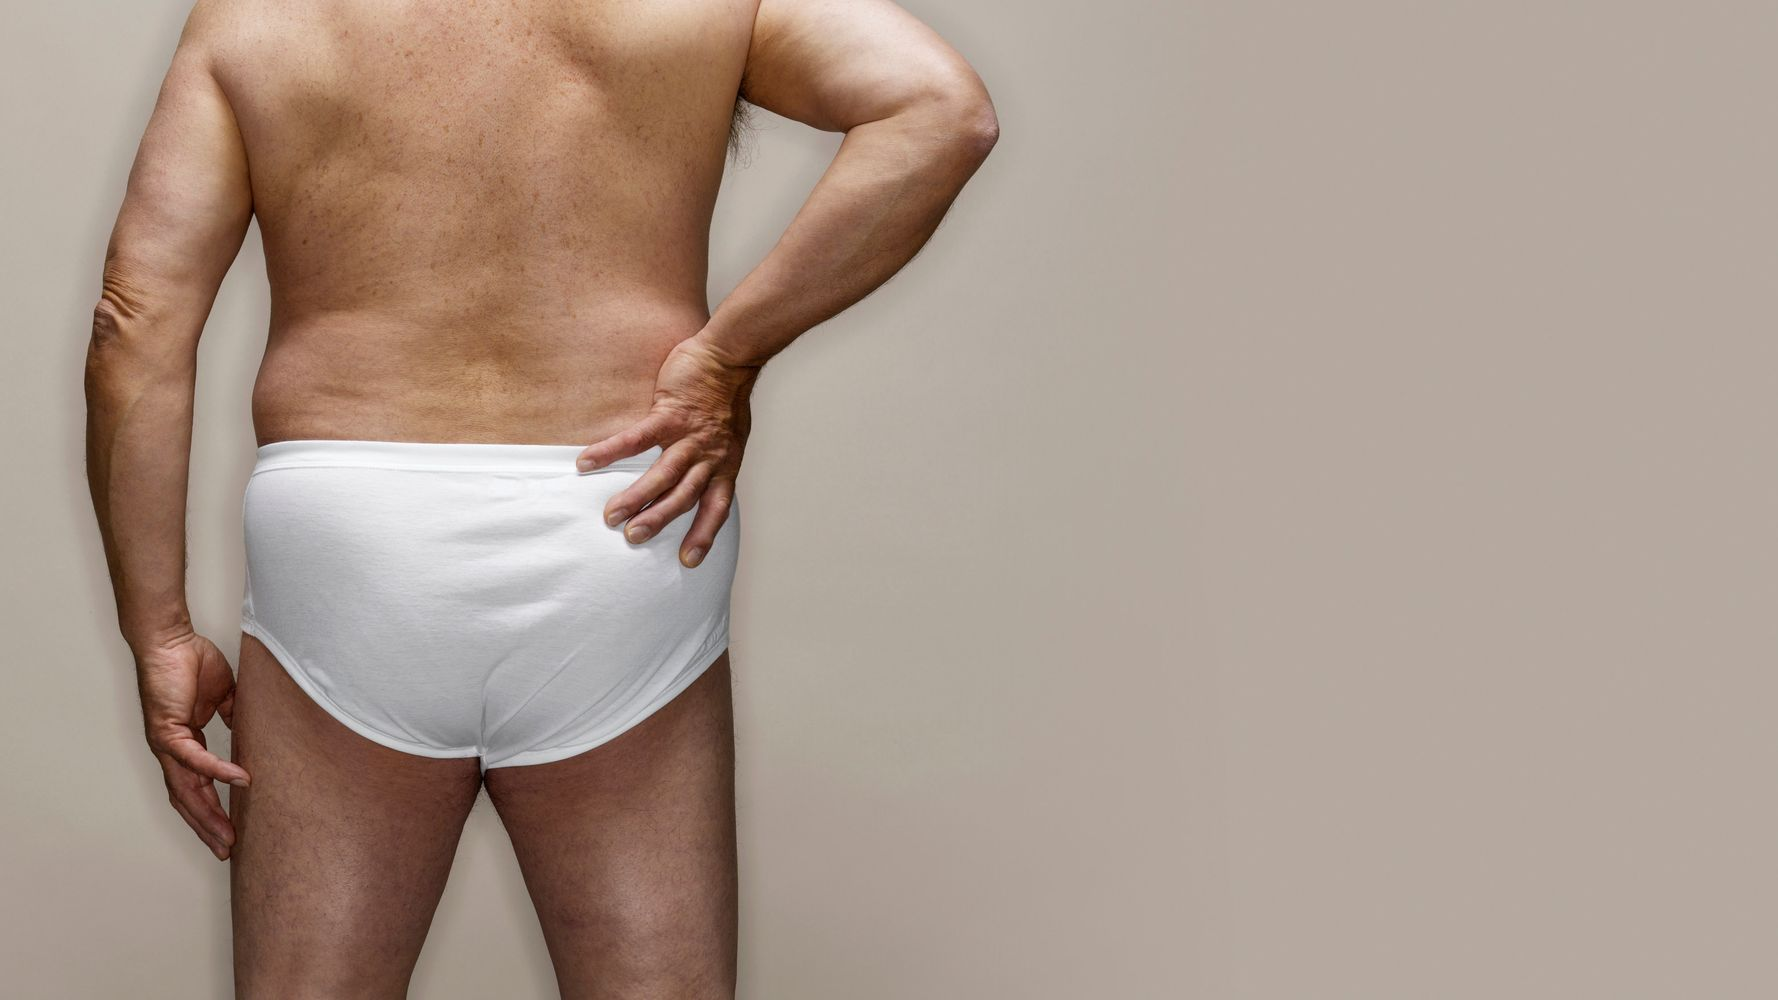 8 Underwear Mistakes That Are Bad For Your Health | HuffPost